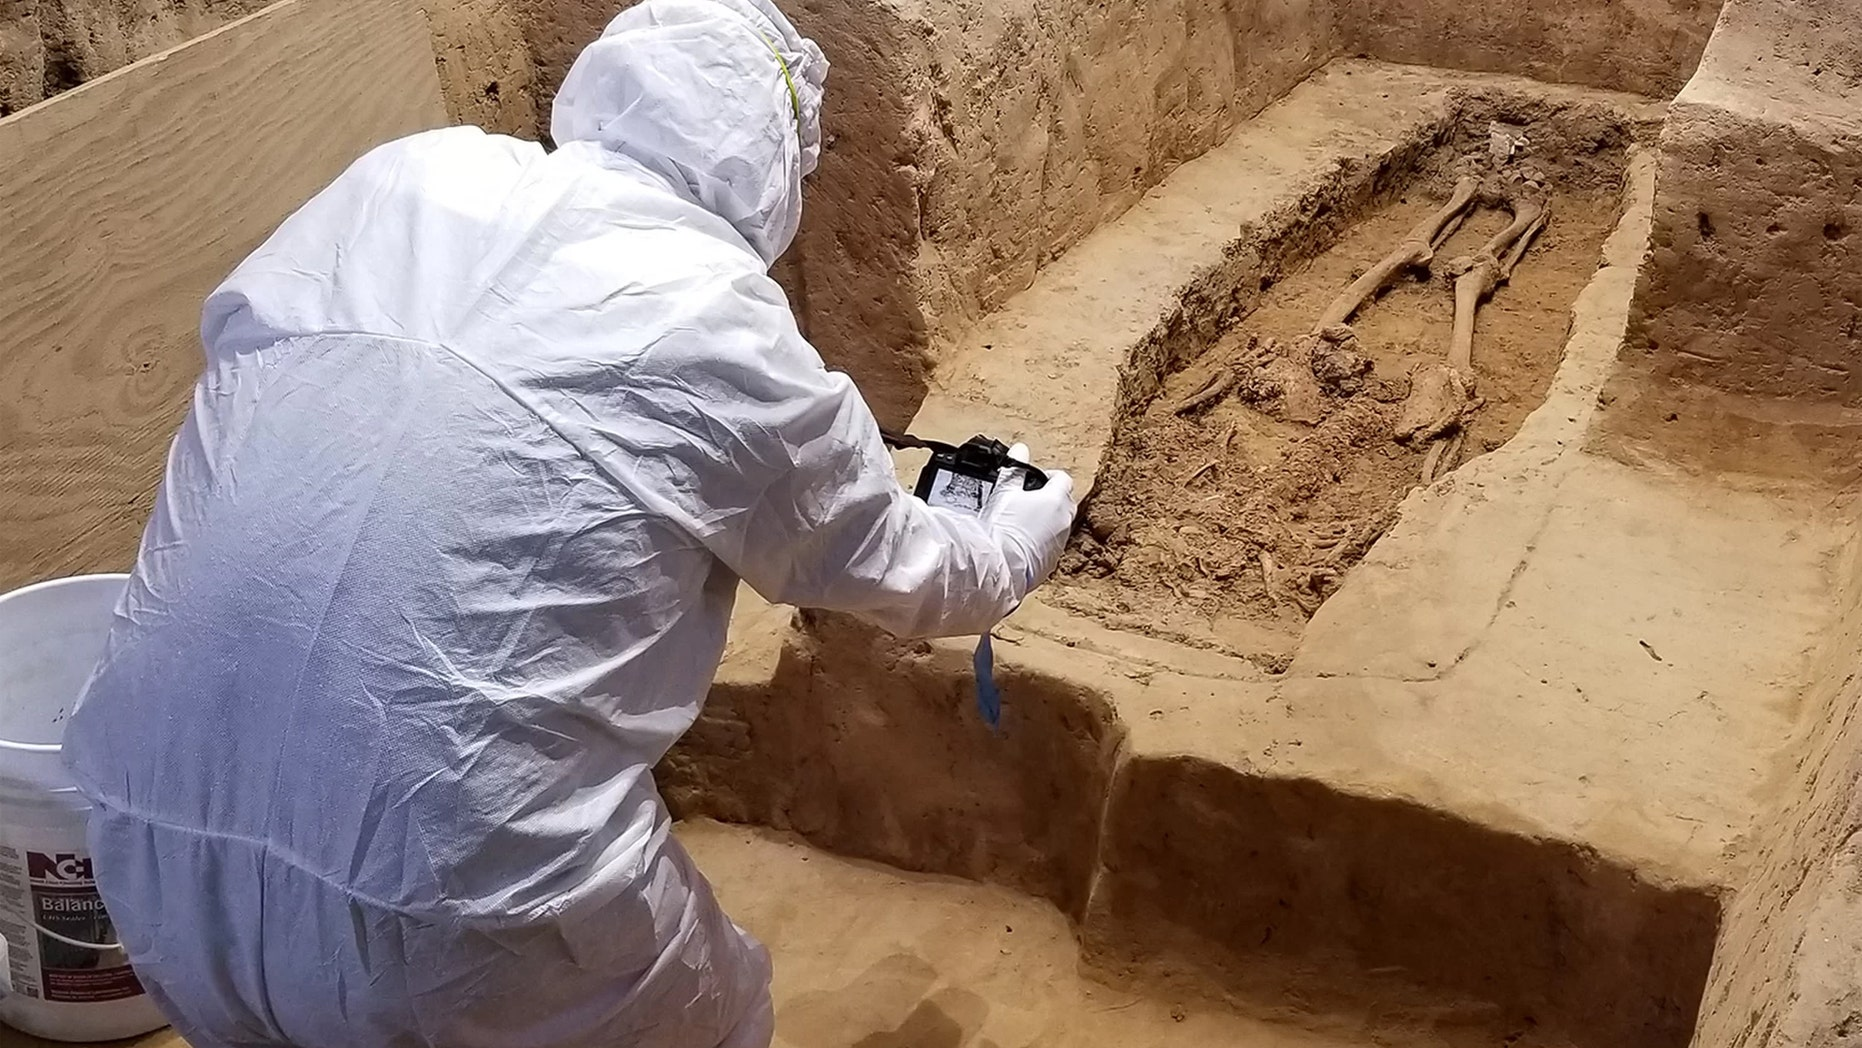 An archaeologist investigates the burial while wearing a suit that will minimize contamination to the historical site. Credit: Jamestown Rediscovery